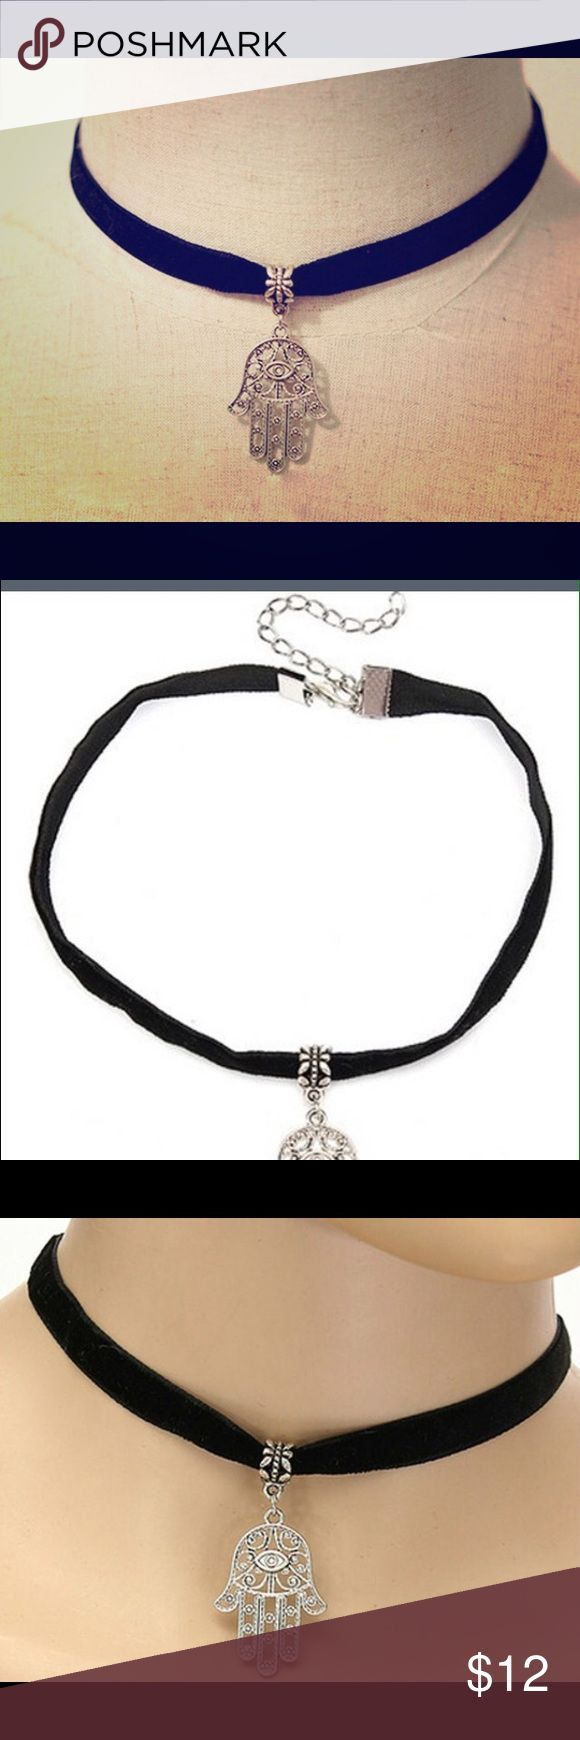 COMING SOON! Adjustable Black Choker w Hamza Charm Will update listing once available! Multiple pieces will be available. Black Choker, that is completely adjustable with a clasp in back. Hamza charm on front. Jewelry Necklaces